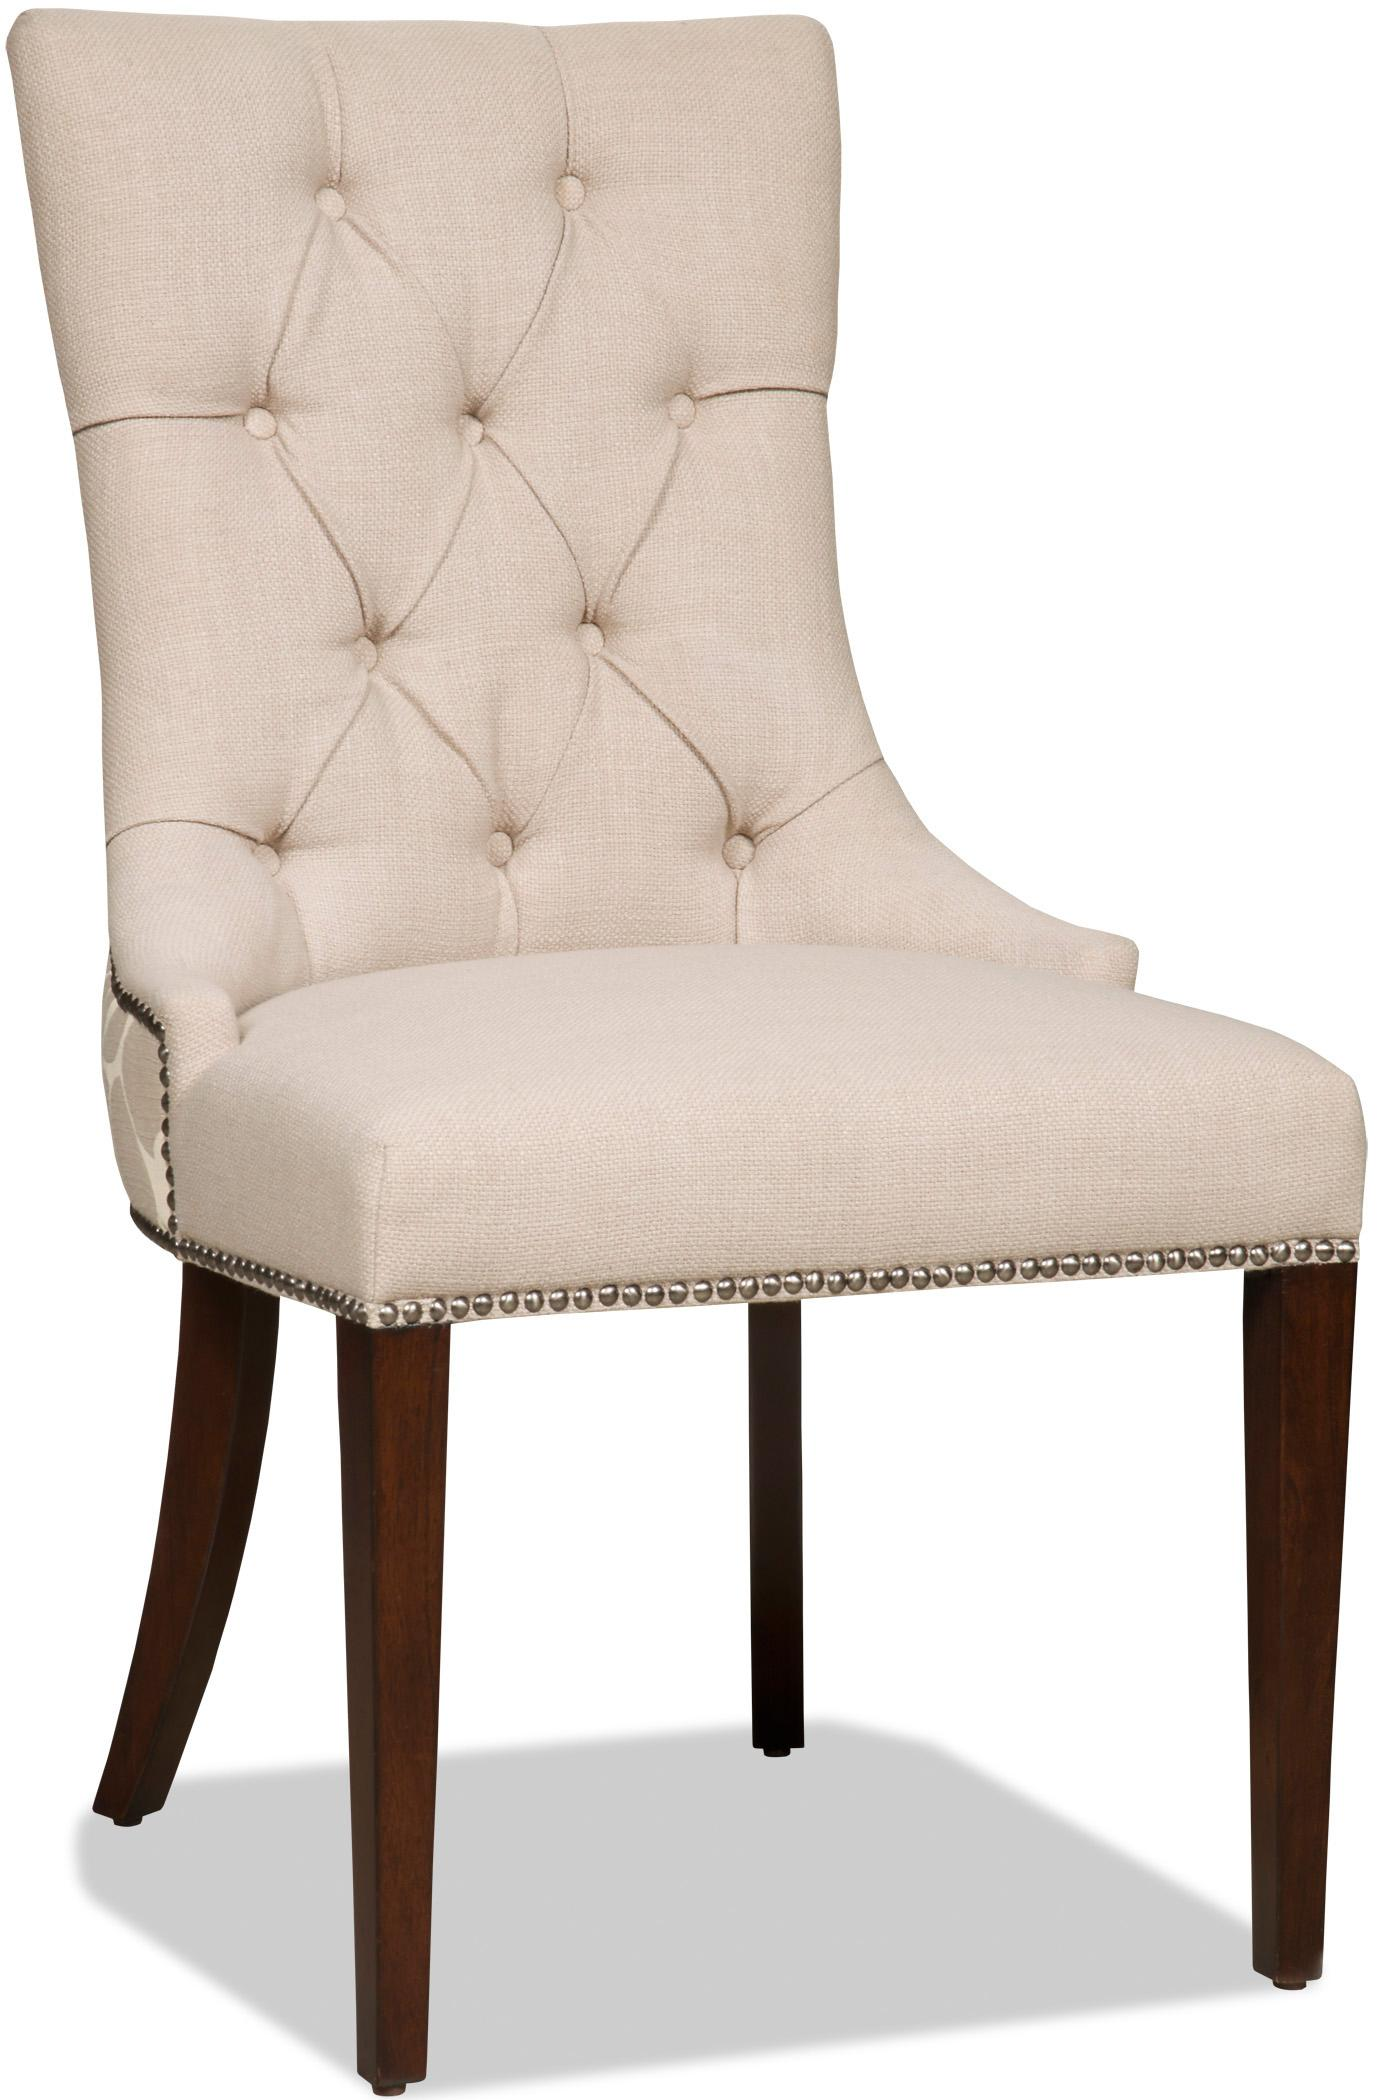 Hooker furniture dining chairs 300 350031 upholstered for Upholstered dining room side chairs